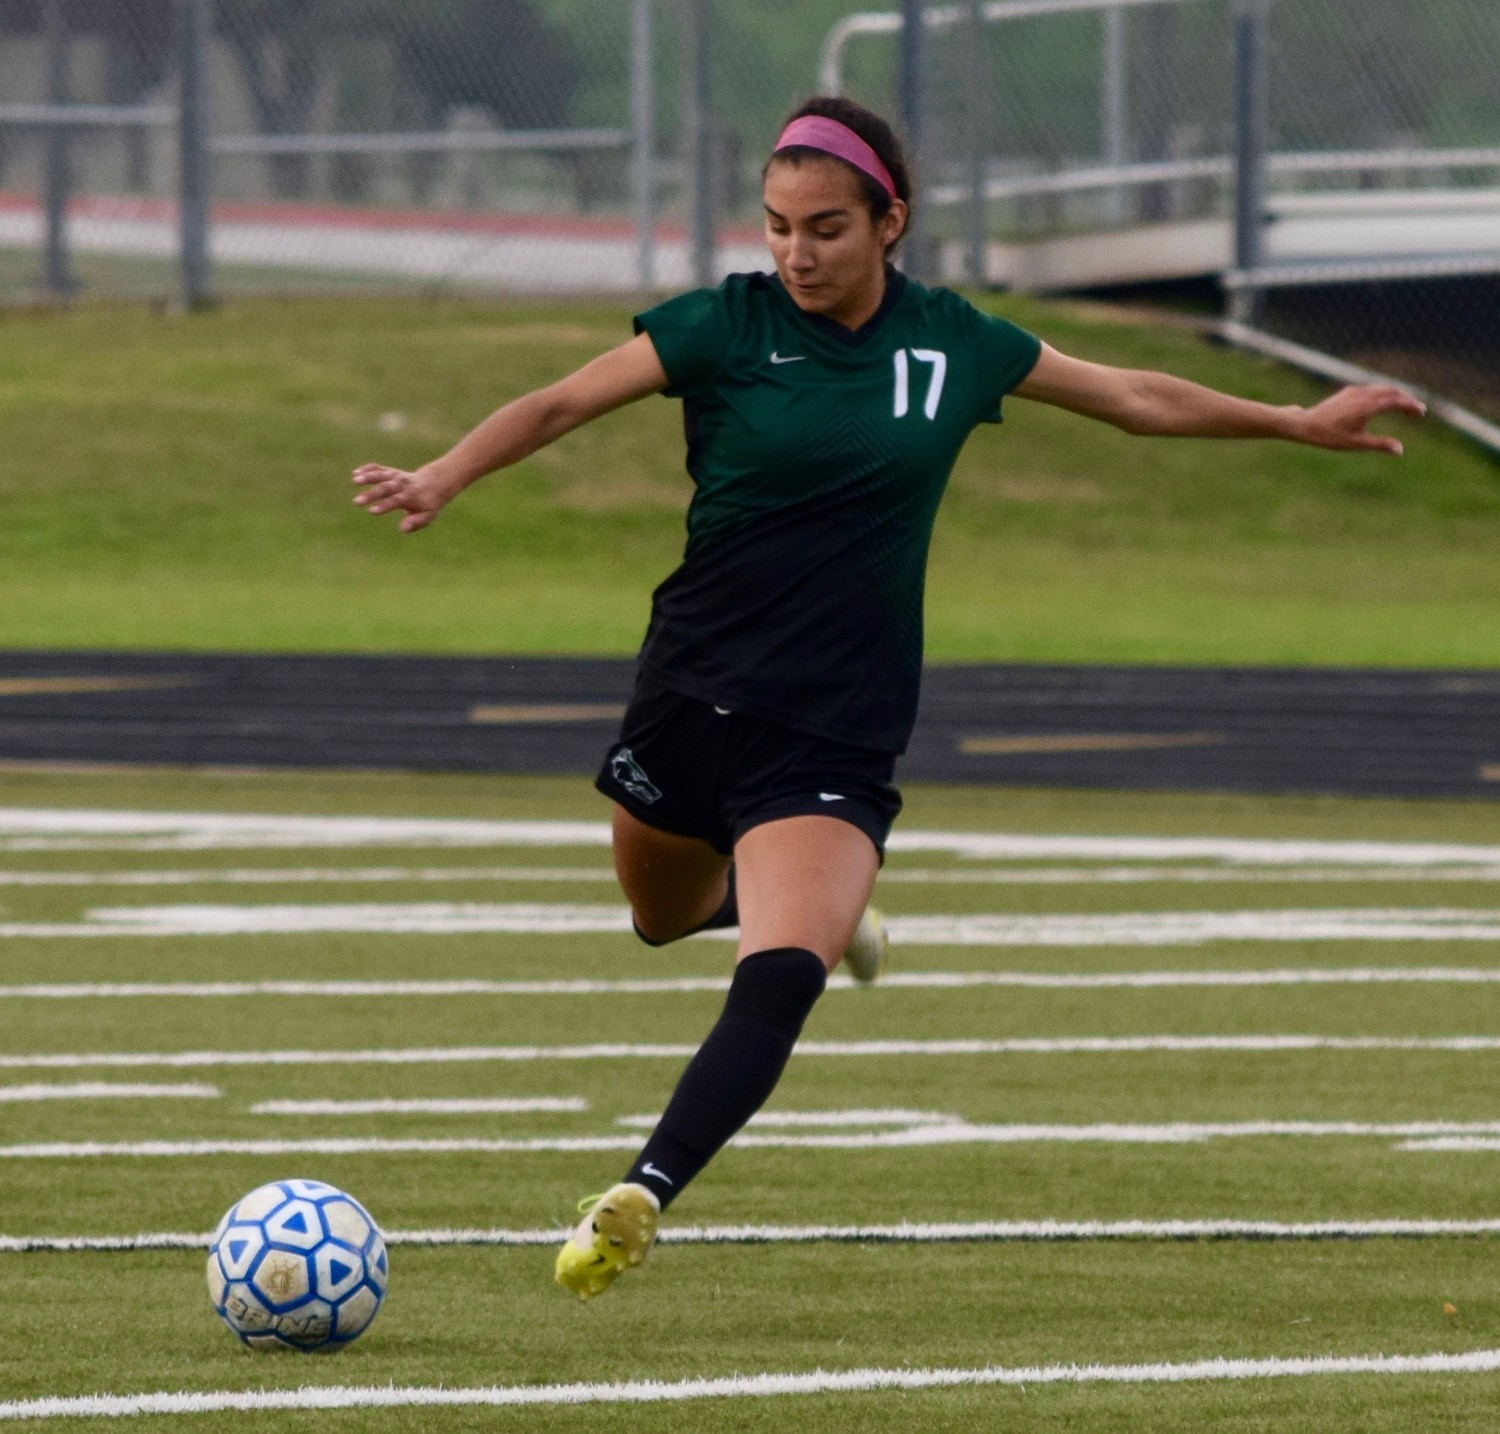 Anna Briseno and the Lady Timberwolves beat Magnolia in the first round, avenged last season's playoff loss to College Station in the second round and downed Tomball Memorial in the regional semifinals last Friday.